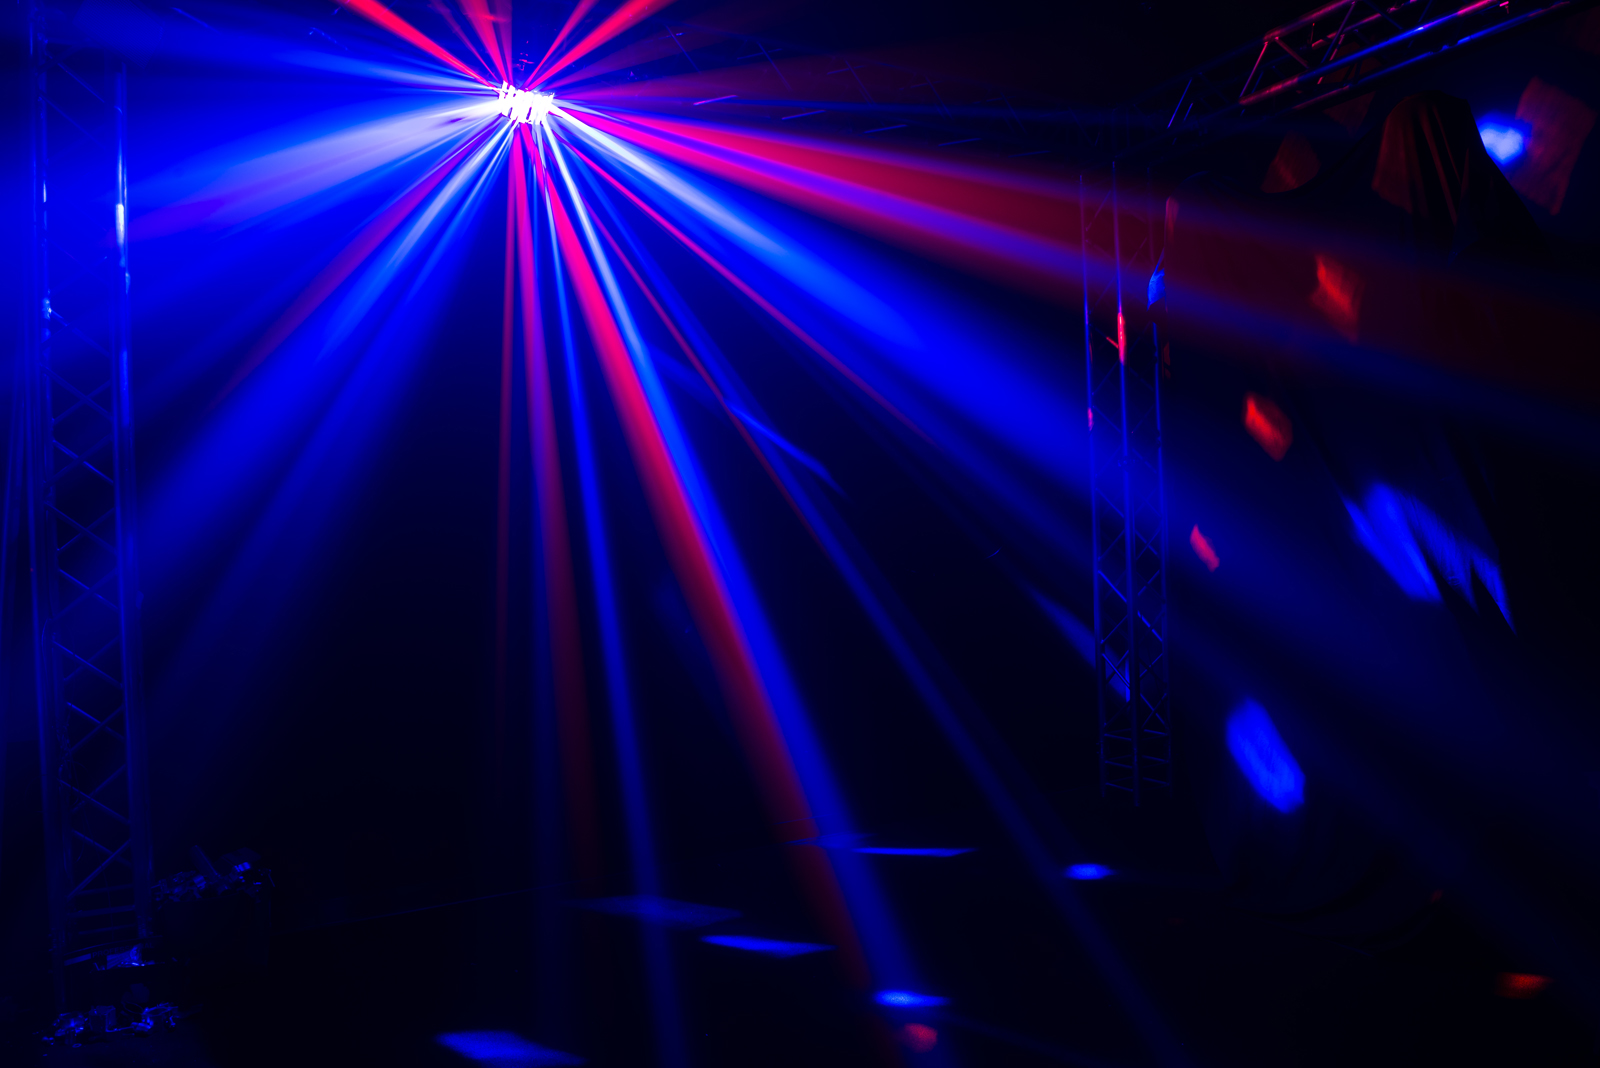 Chauvet Dj Kinta Fx 3 In One Effect With Quad Color Beams Red Green Laser White Smd Strobes